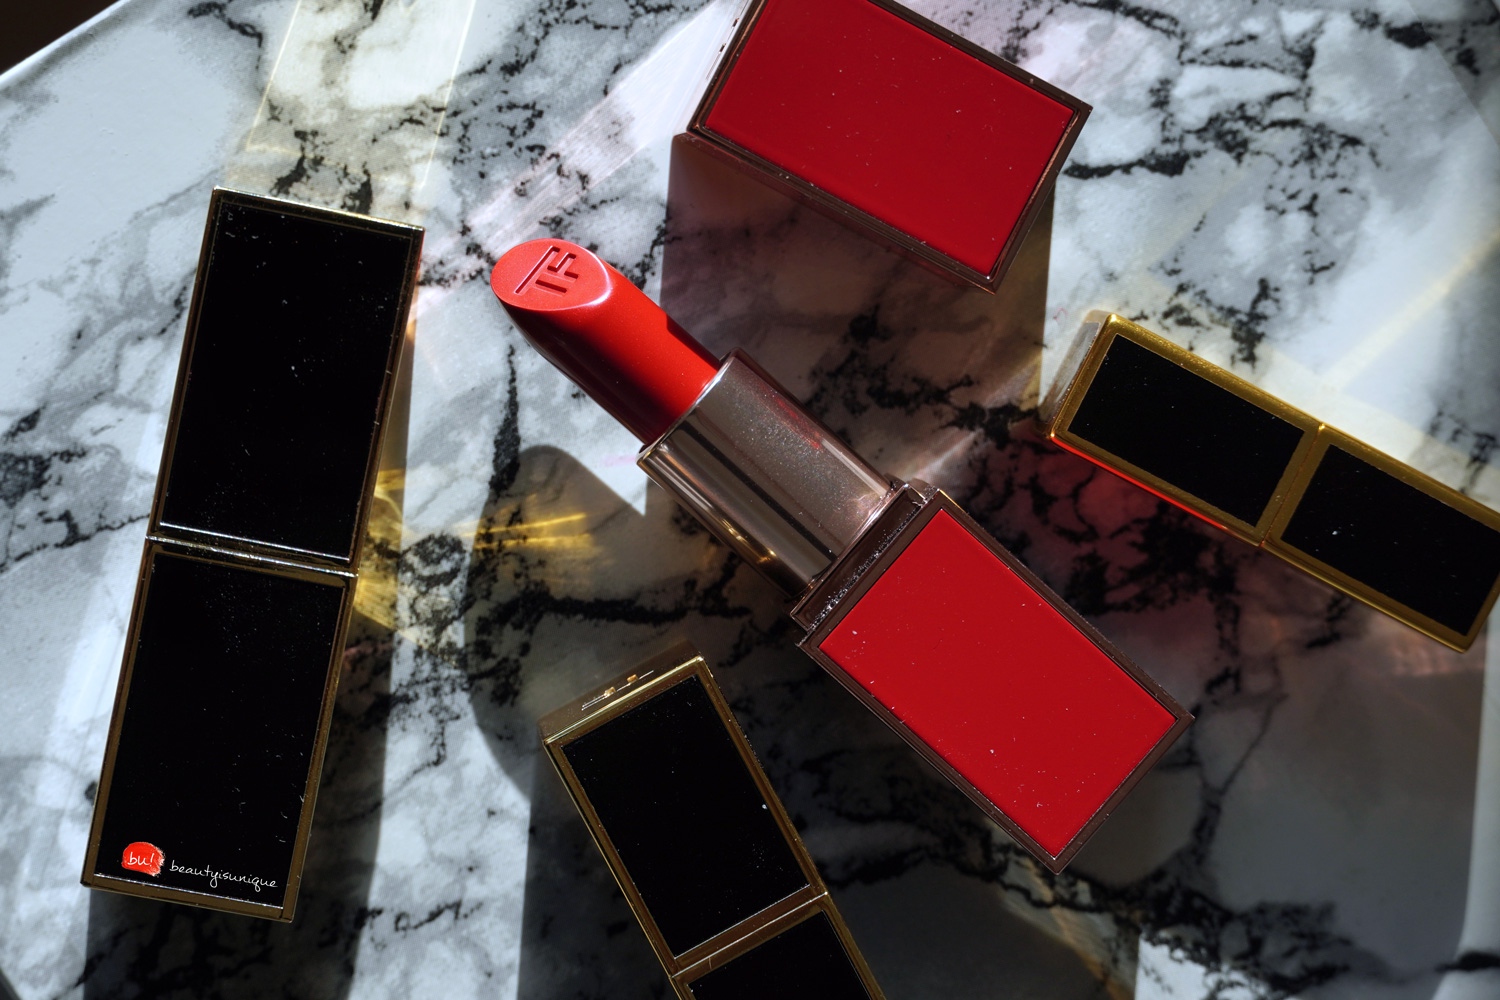 Tom-ford-lost-cherry-swatches